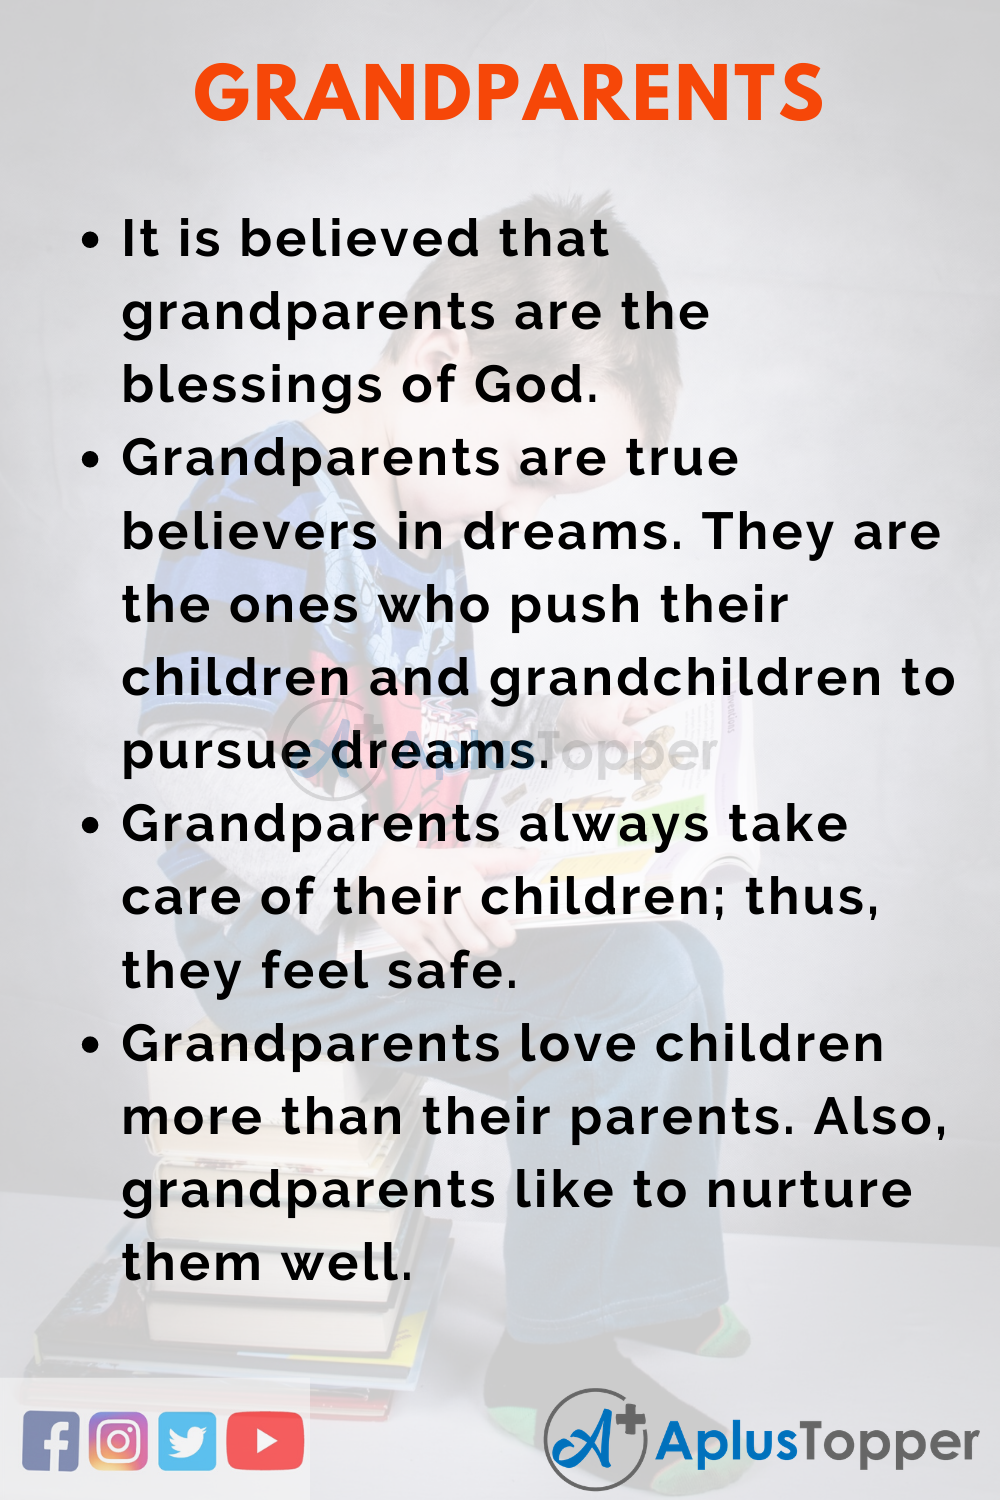 10 Lines on Grandparents for Higher Class Students